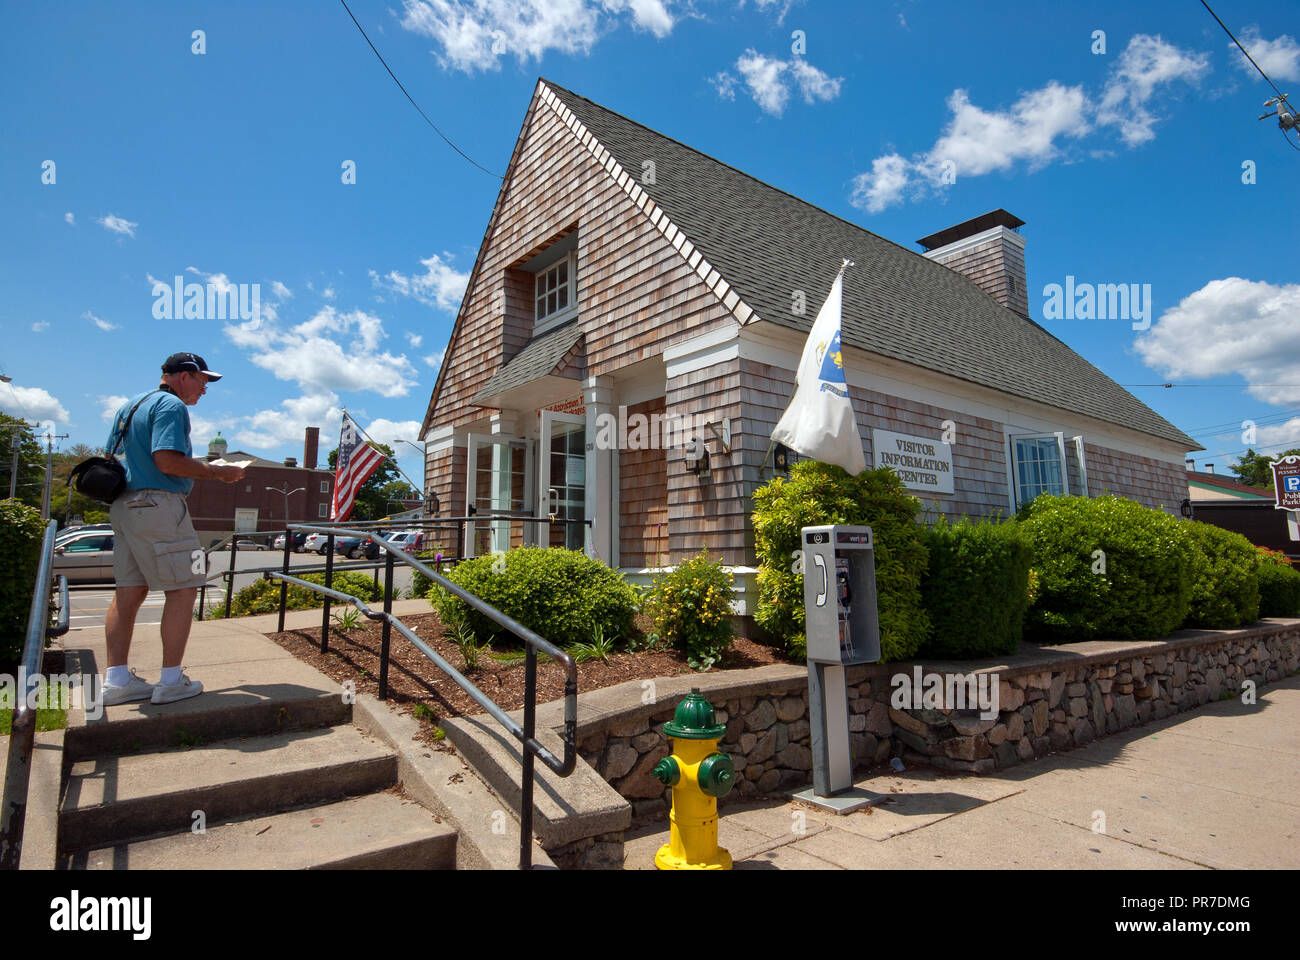 Visitor Information Center in Plymouth, Plymouth County, Massachusetts, USA - Stock Image